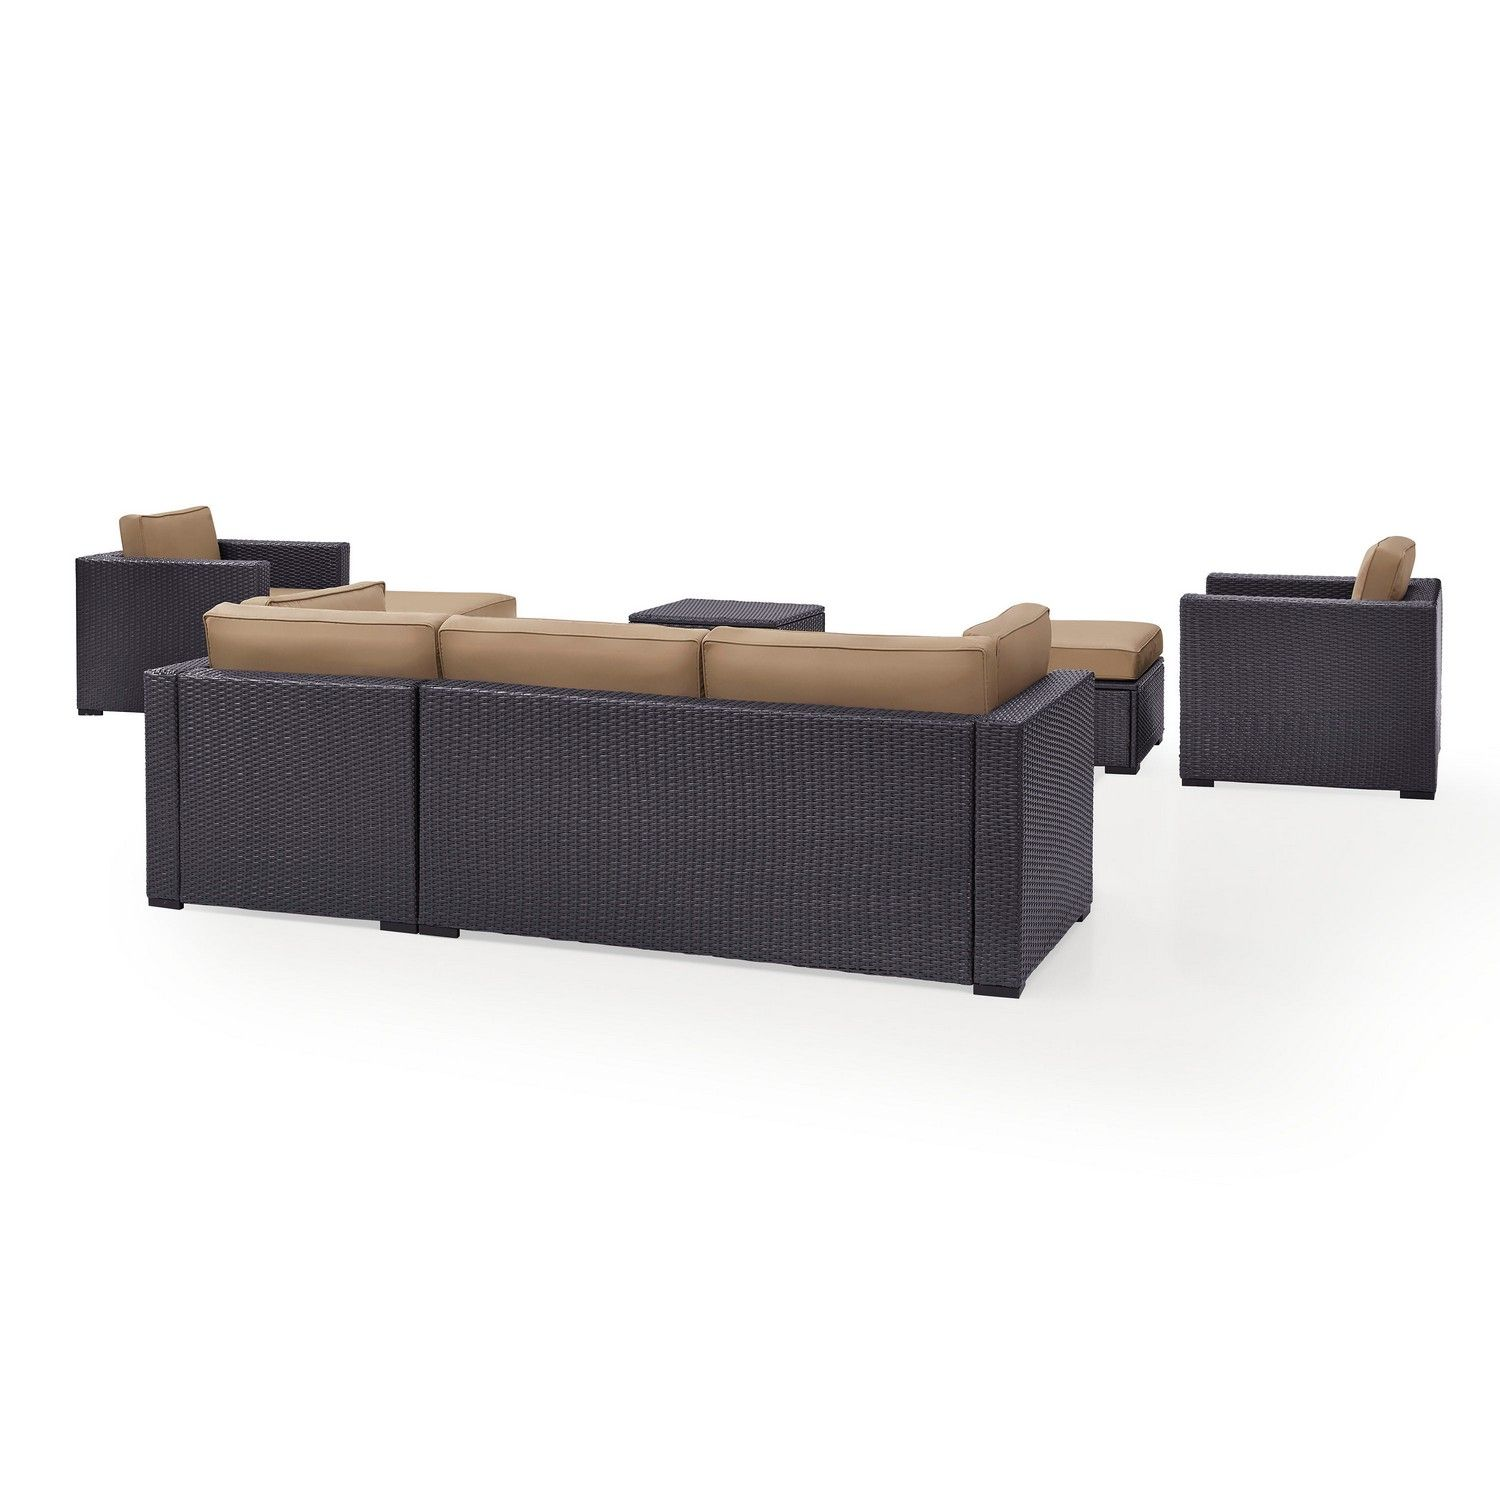 Crosley Biscayne 7-PC Outdoor Wicker Sectional Set - Loveseat, 2 Arm Chairs, Corner Chair, Coffee Table, 2 Ottomans - Mocha/Brown